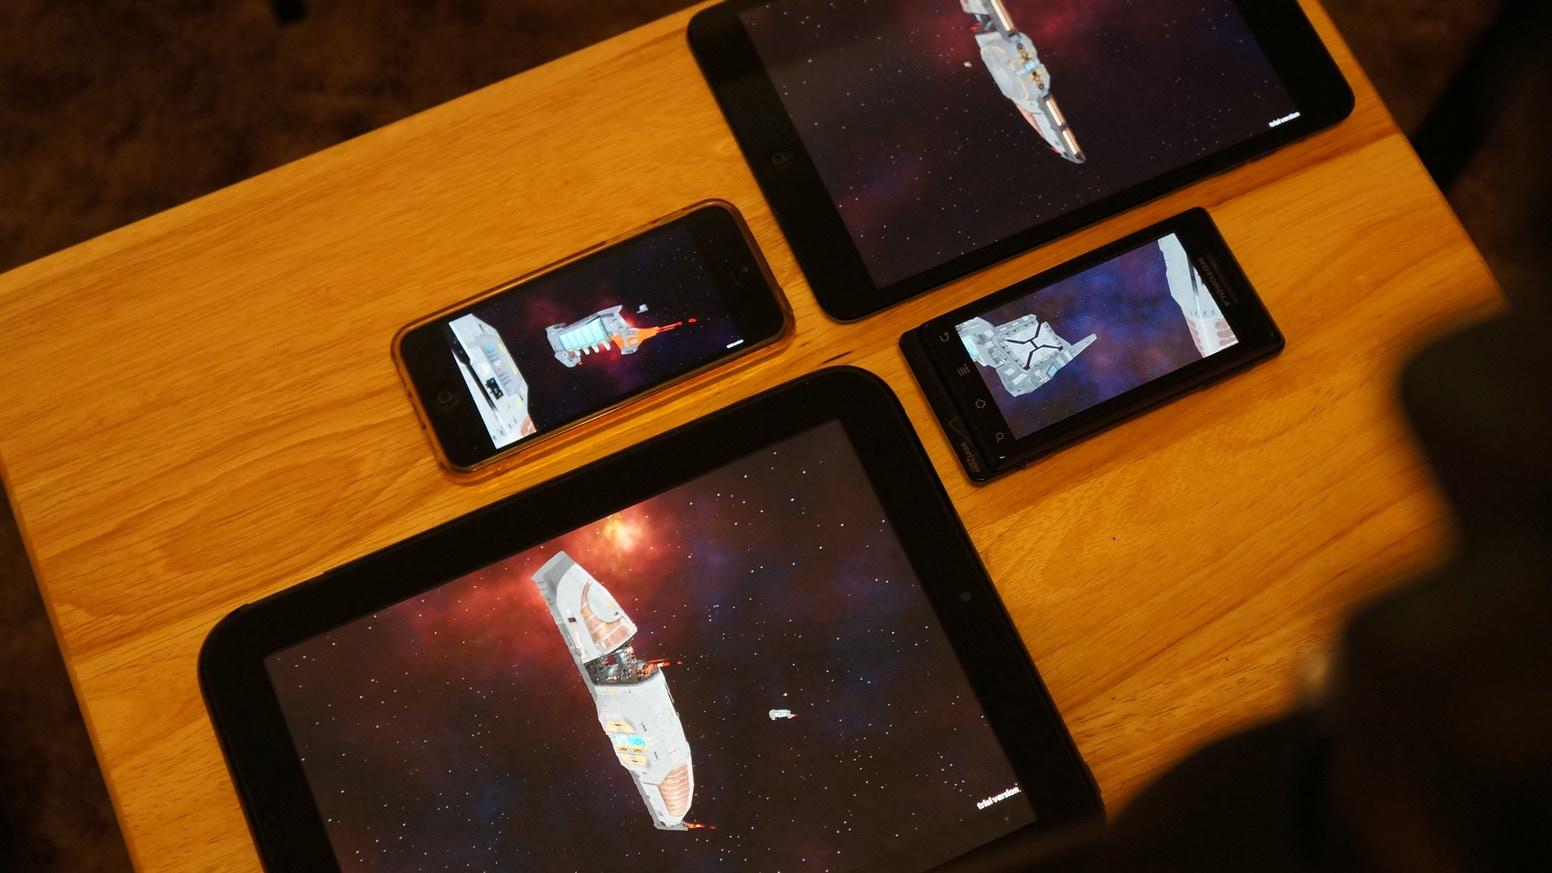 Homeworld Touch (iOS/Android) and Homeworld 3 (PC/Mac/Linux